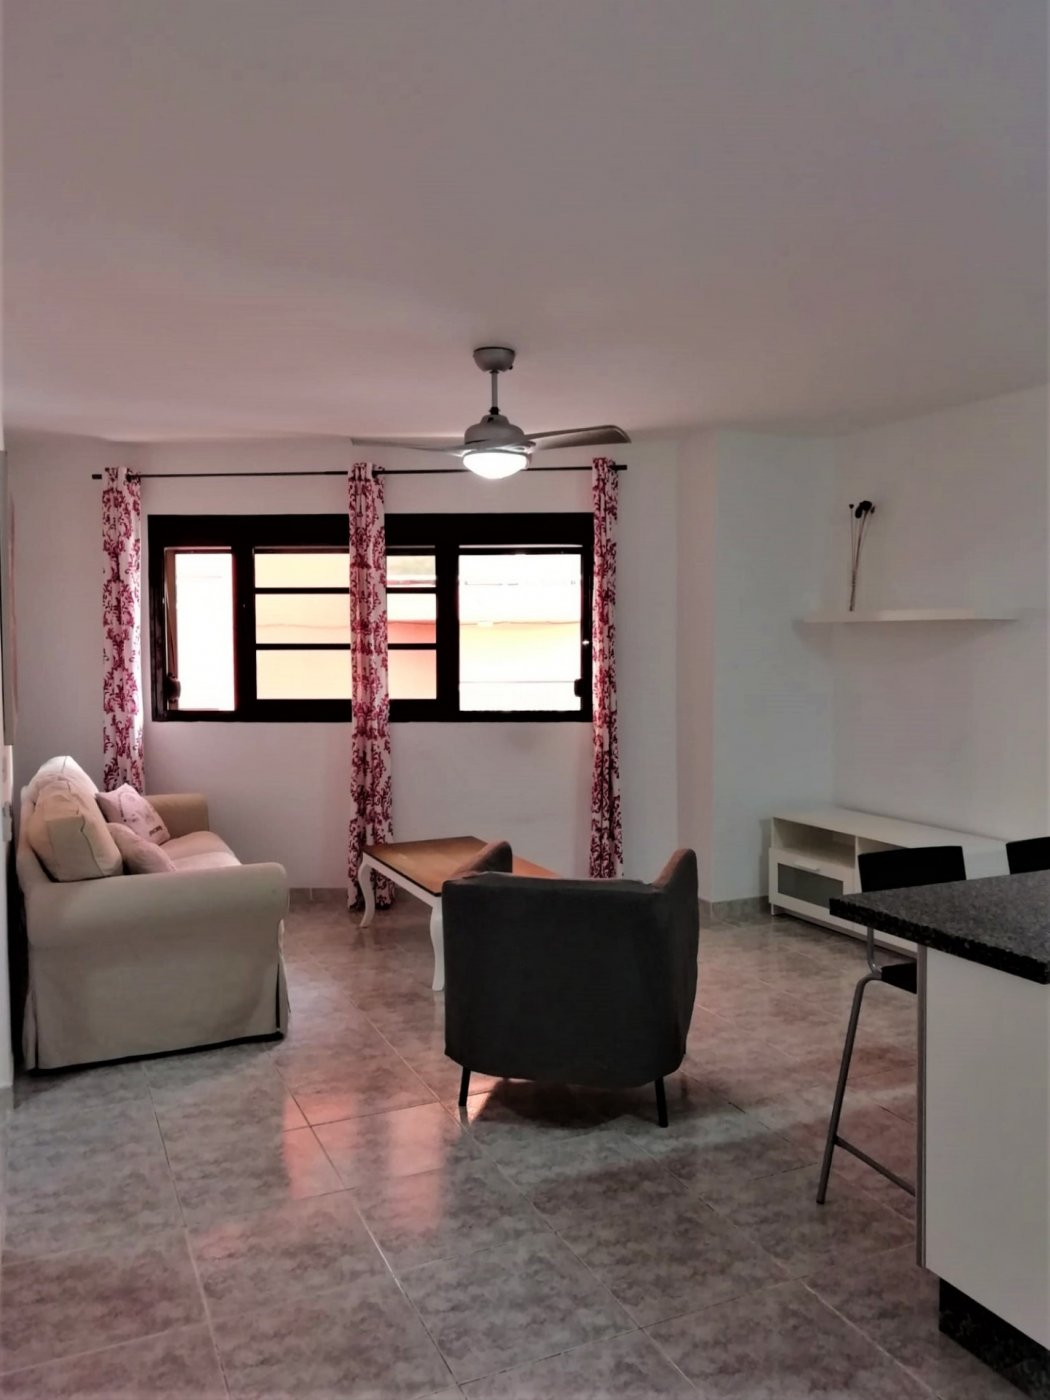 Apartment for rent in El Médano, Granadilla de Abona